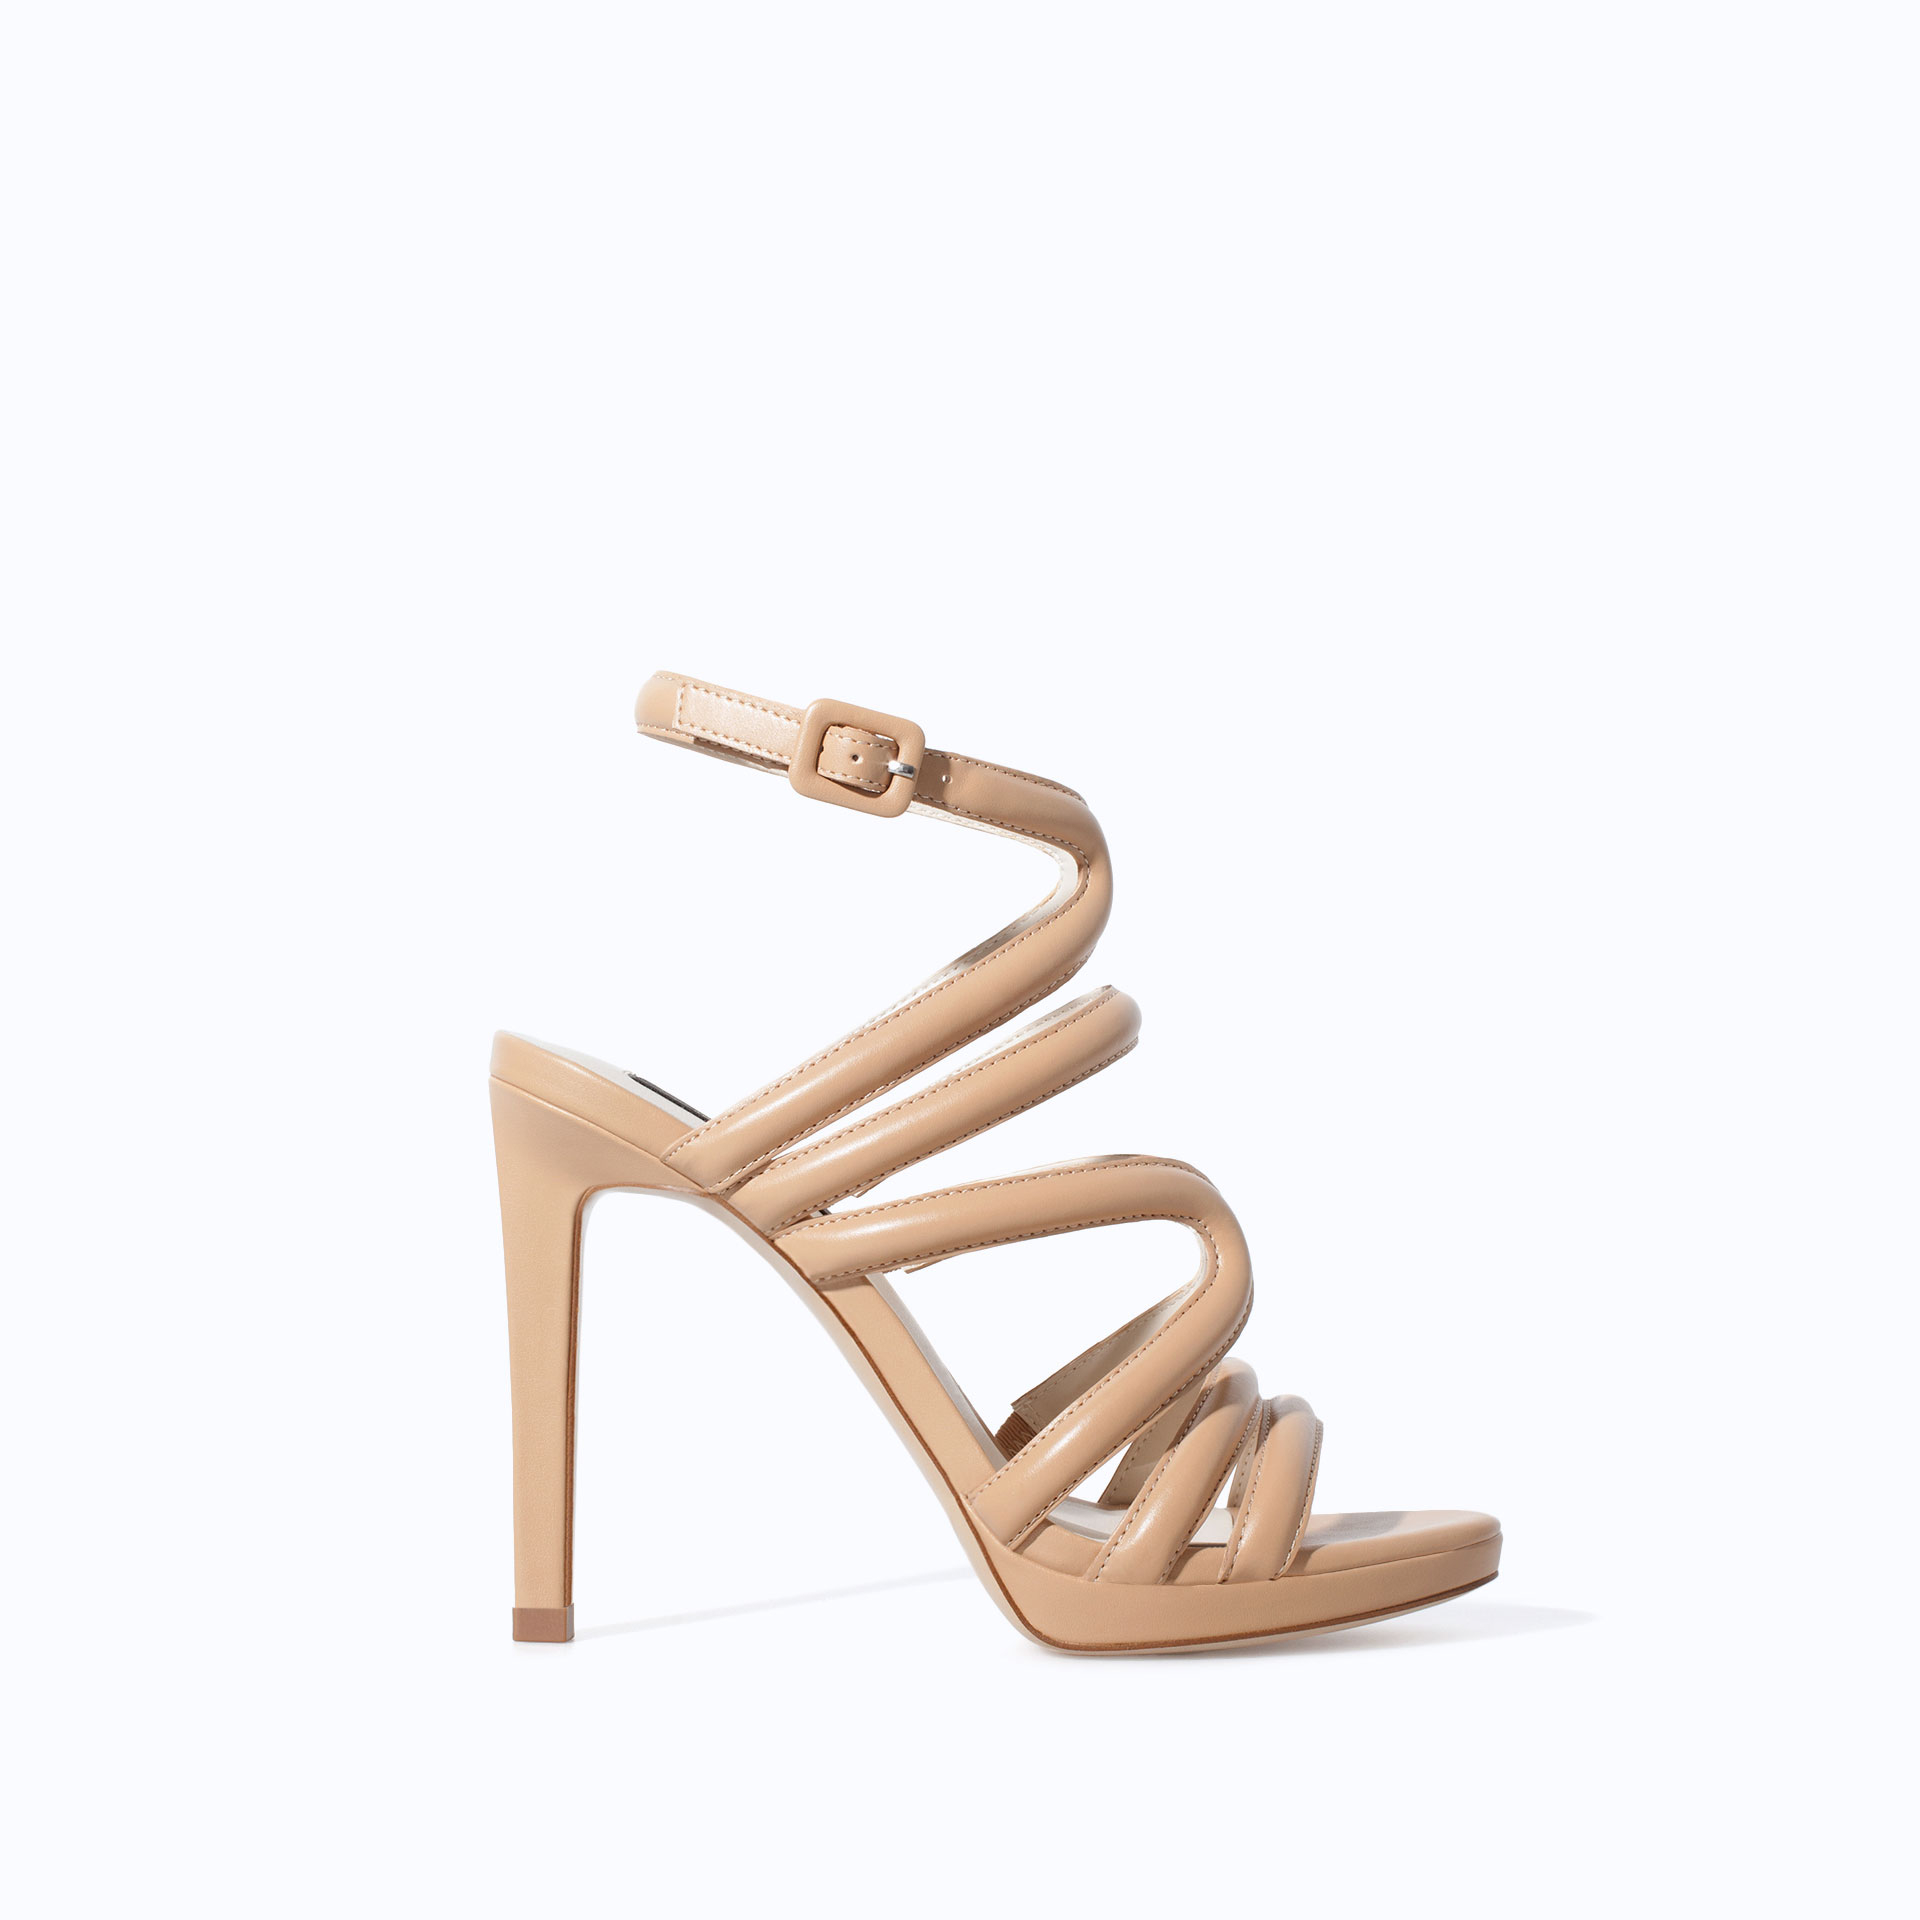 Zara Heeled Strappy Sandals in Natural | Lyst